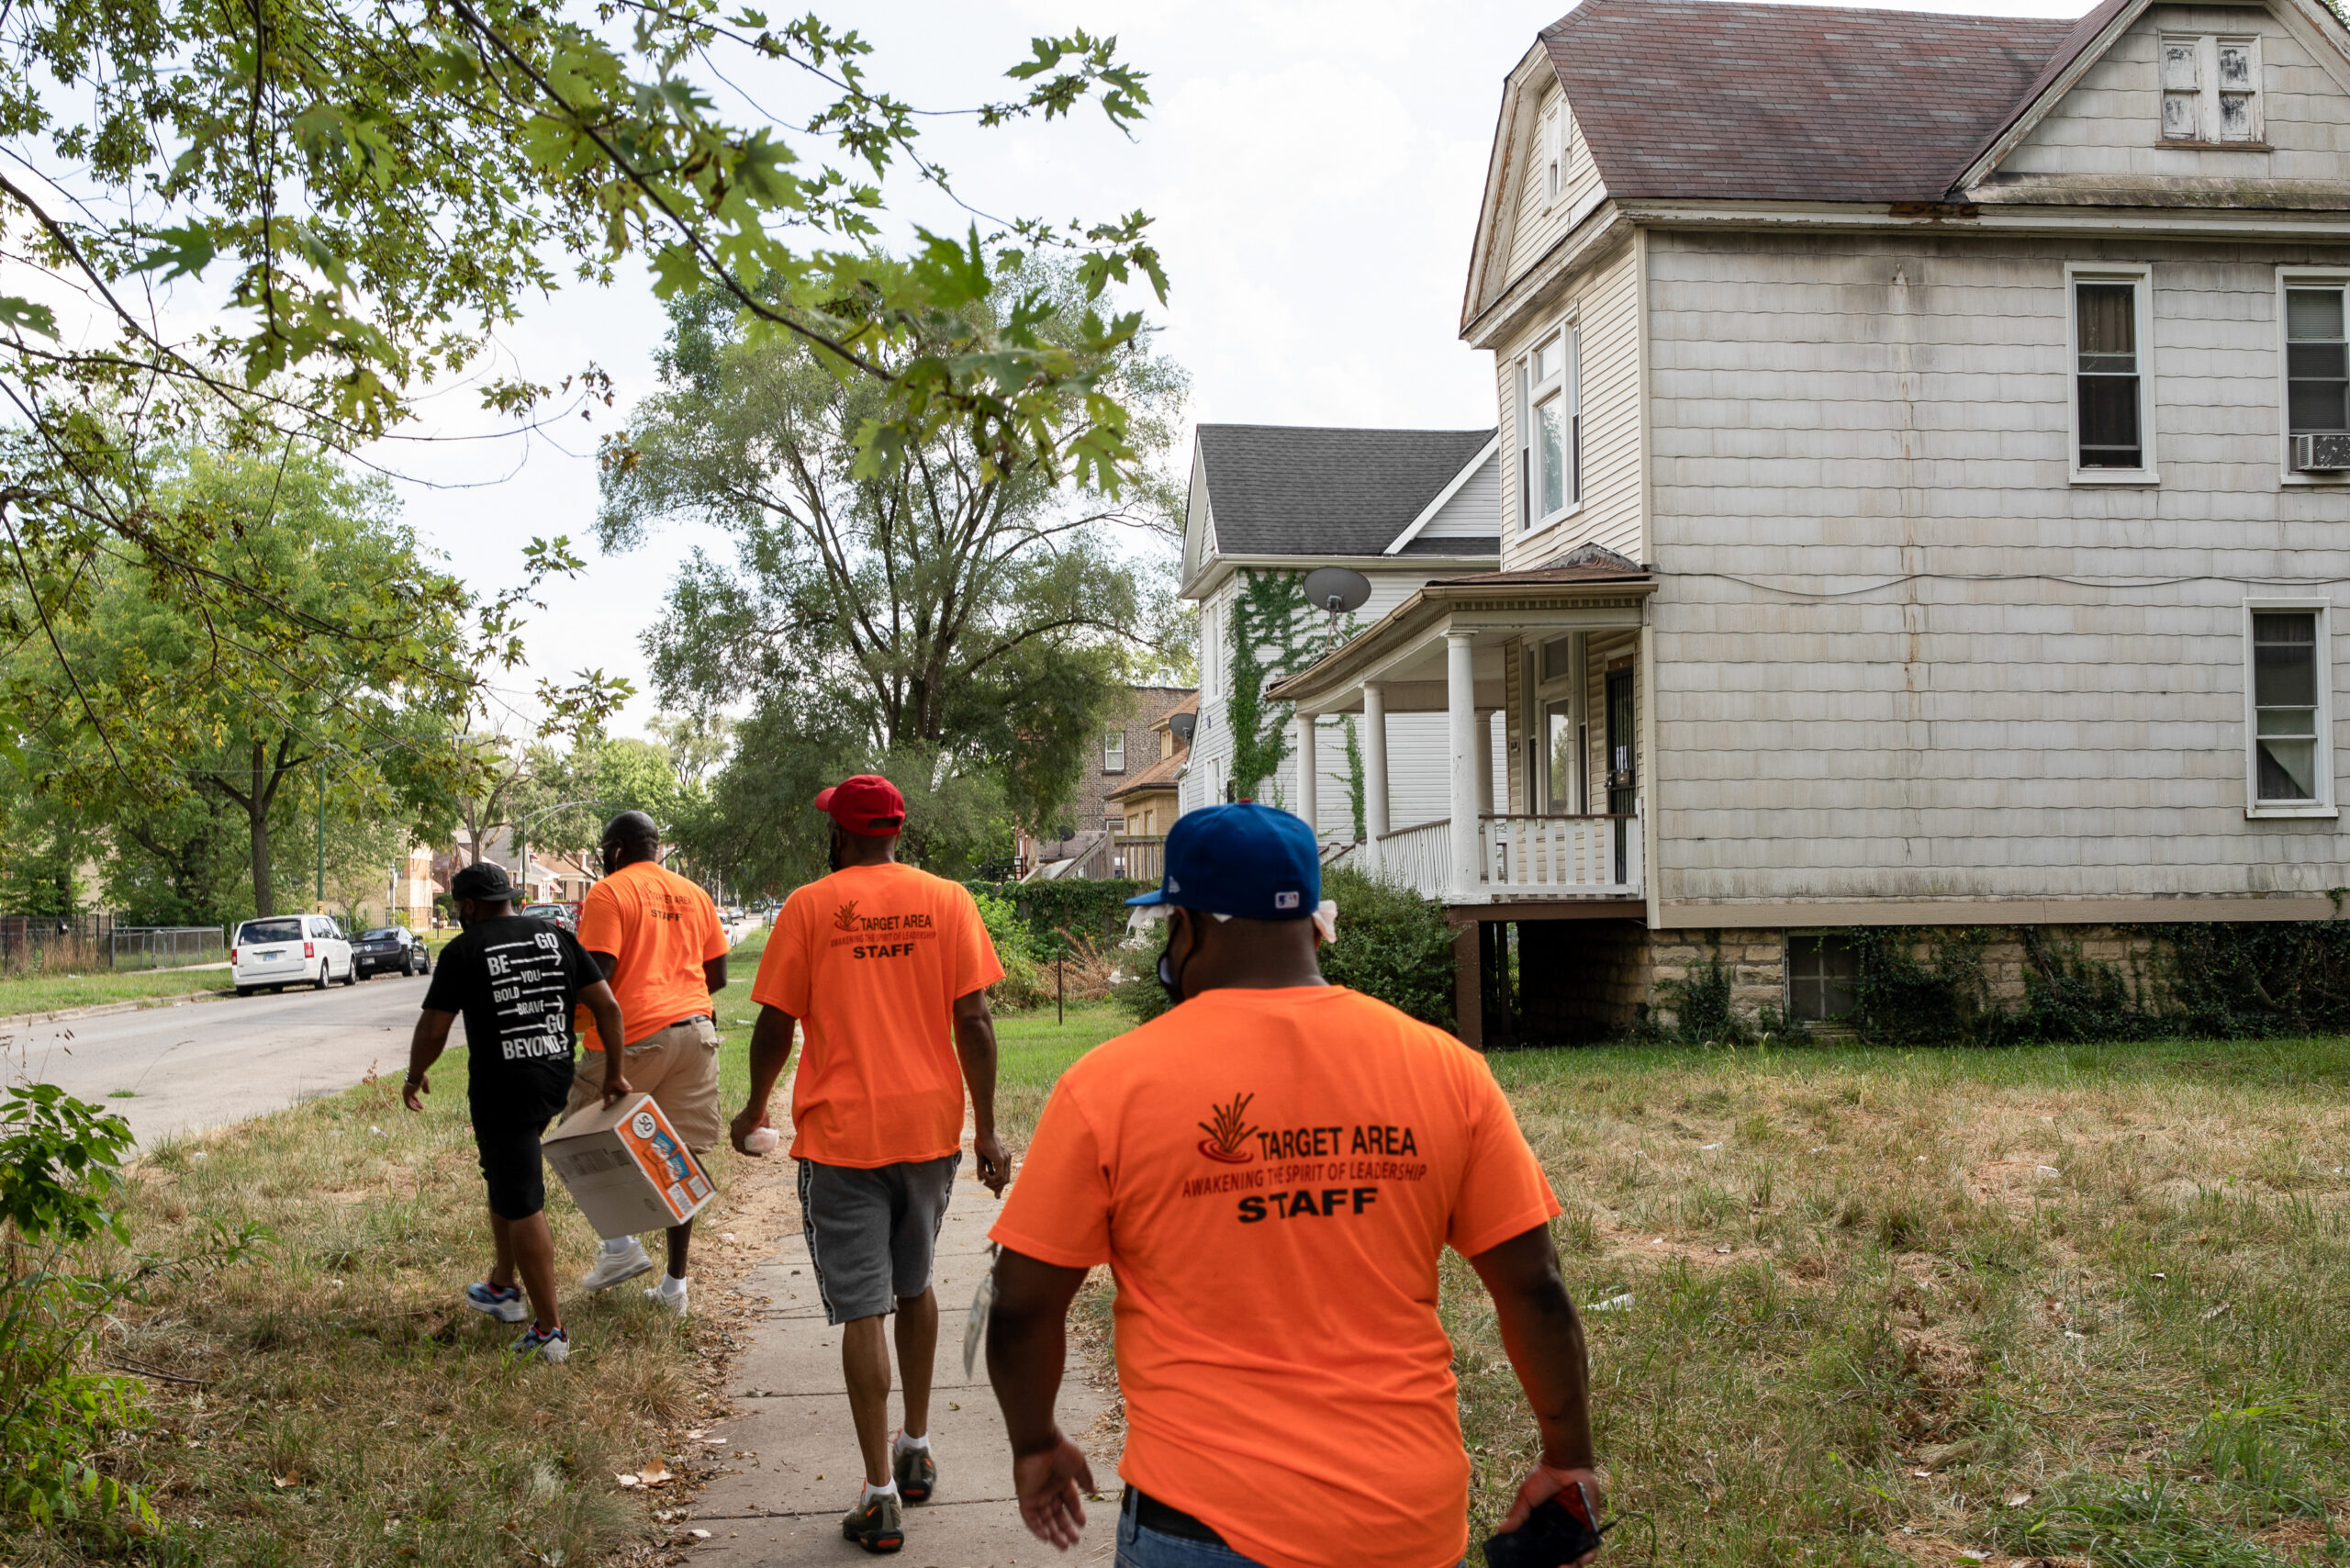 A team of outreach workers walks through a neighborhood in bright orange shirts.